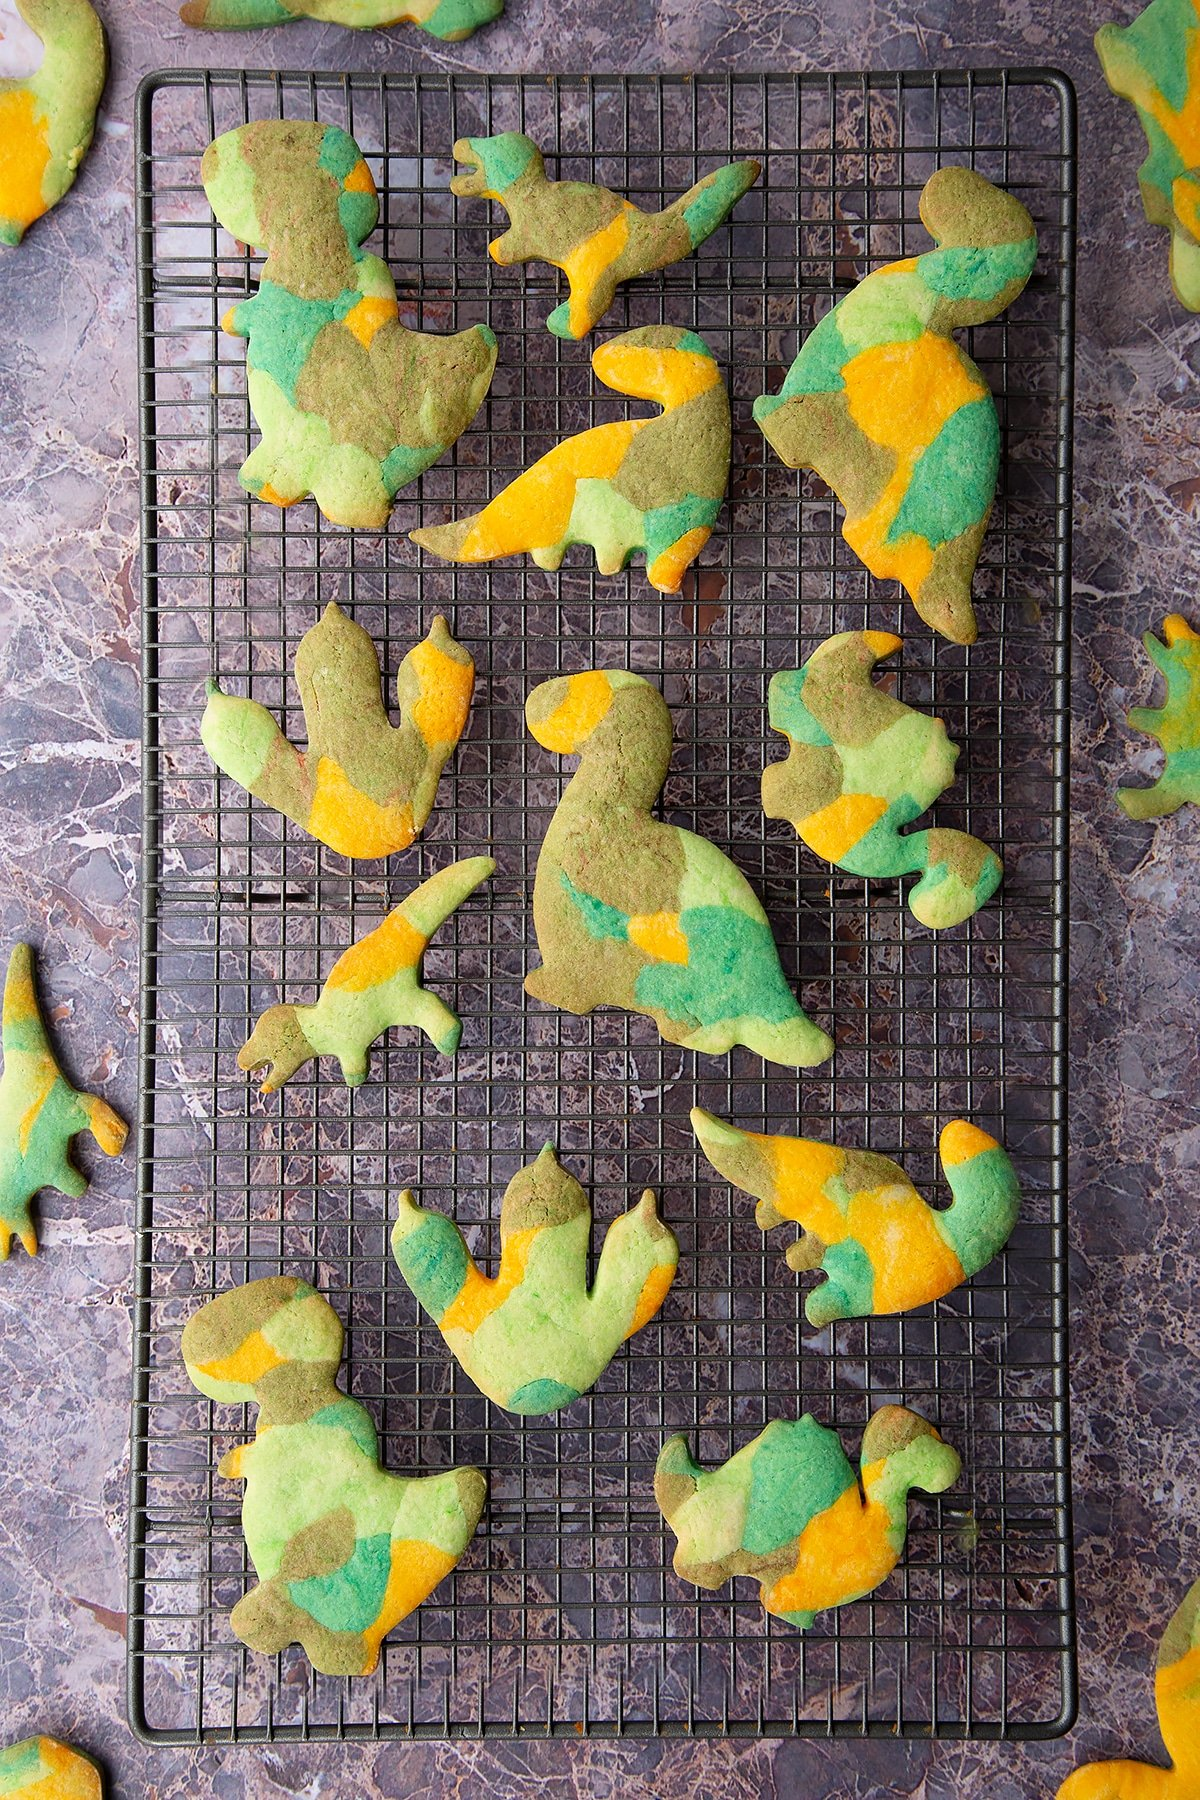 Overhead shot of baked multicoloured dinosaur cookie dough shapes on a metal rack